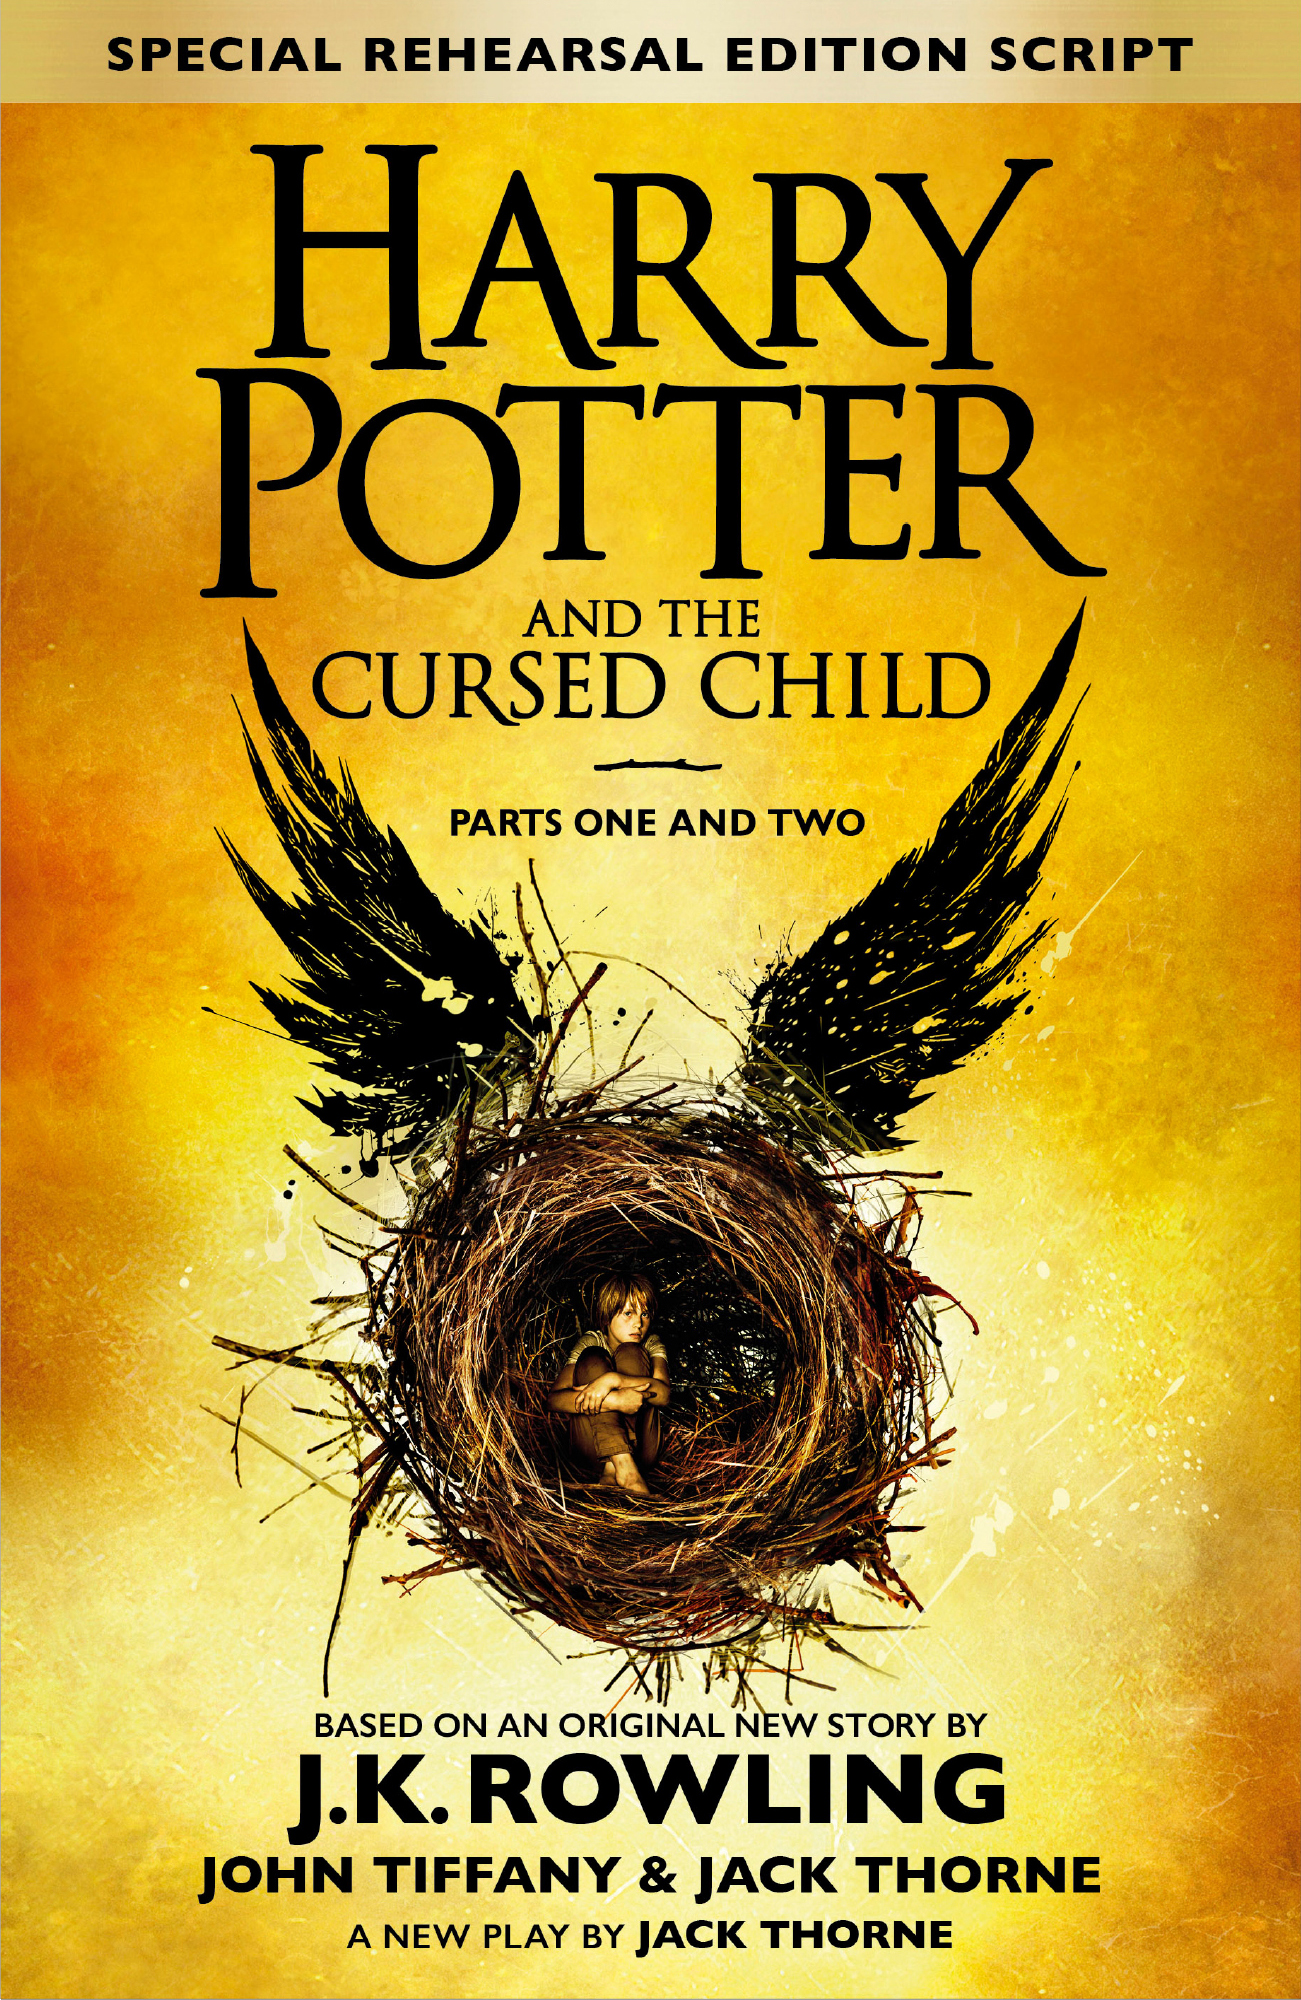 Harry Potter and the Cursed Child – Parts One and Two (Special Rehearsal Edition) The Official Script Book of the Original West End Production